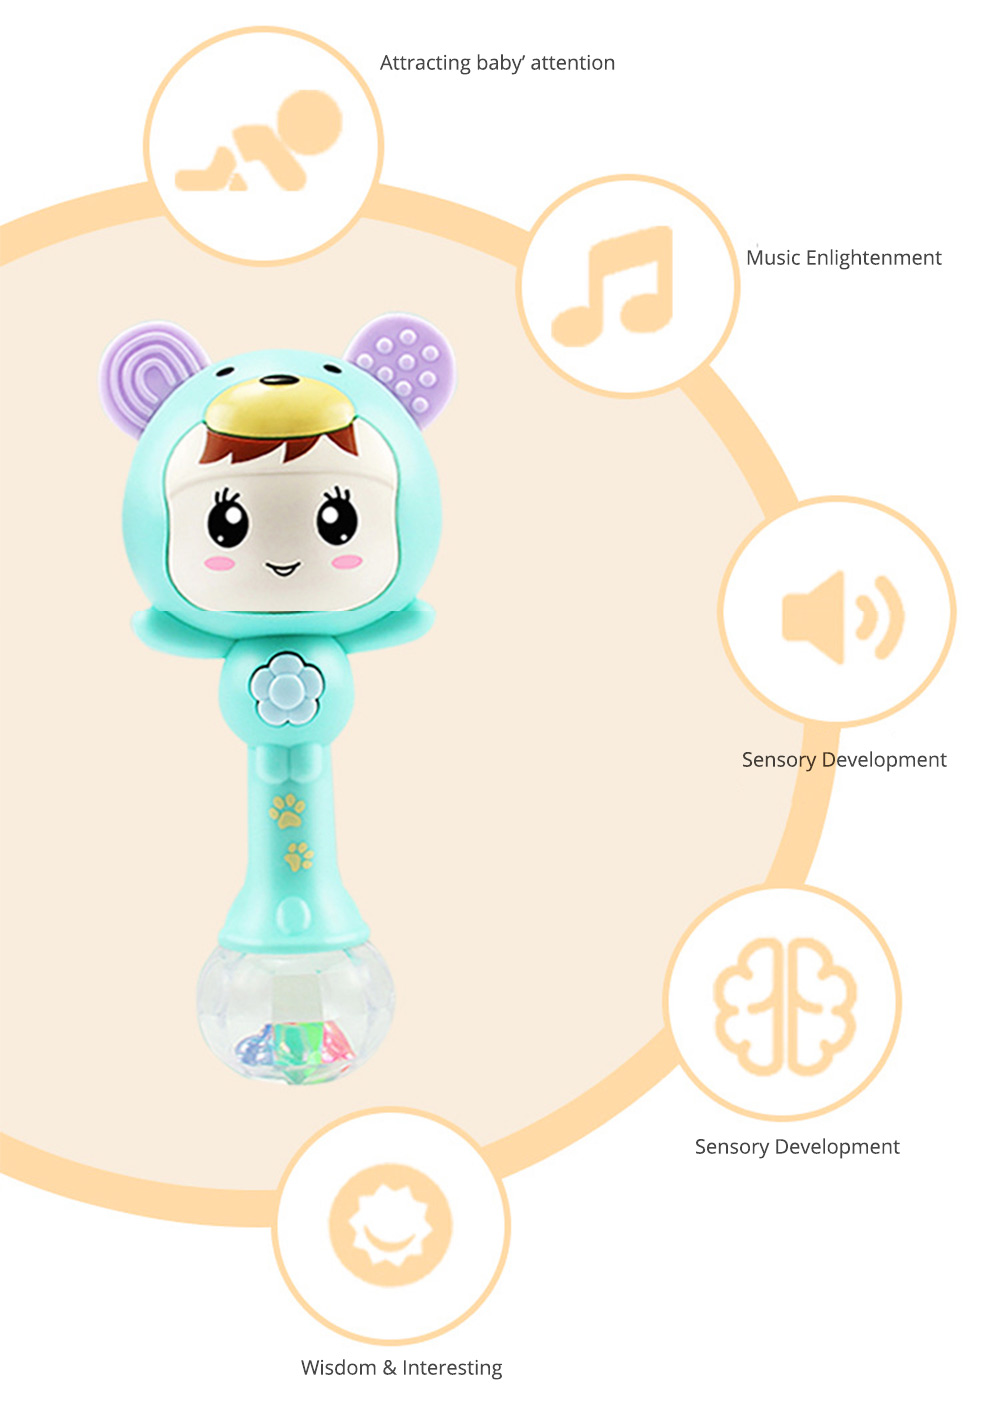 Creative Soft Rubber Babies Music Molar Bite Shaker Toy, Kids Toddler Infant Educational Teething Teether Toy 2